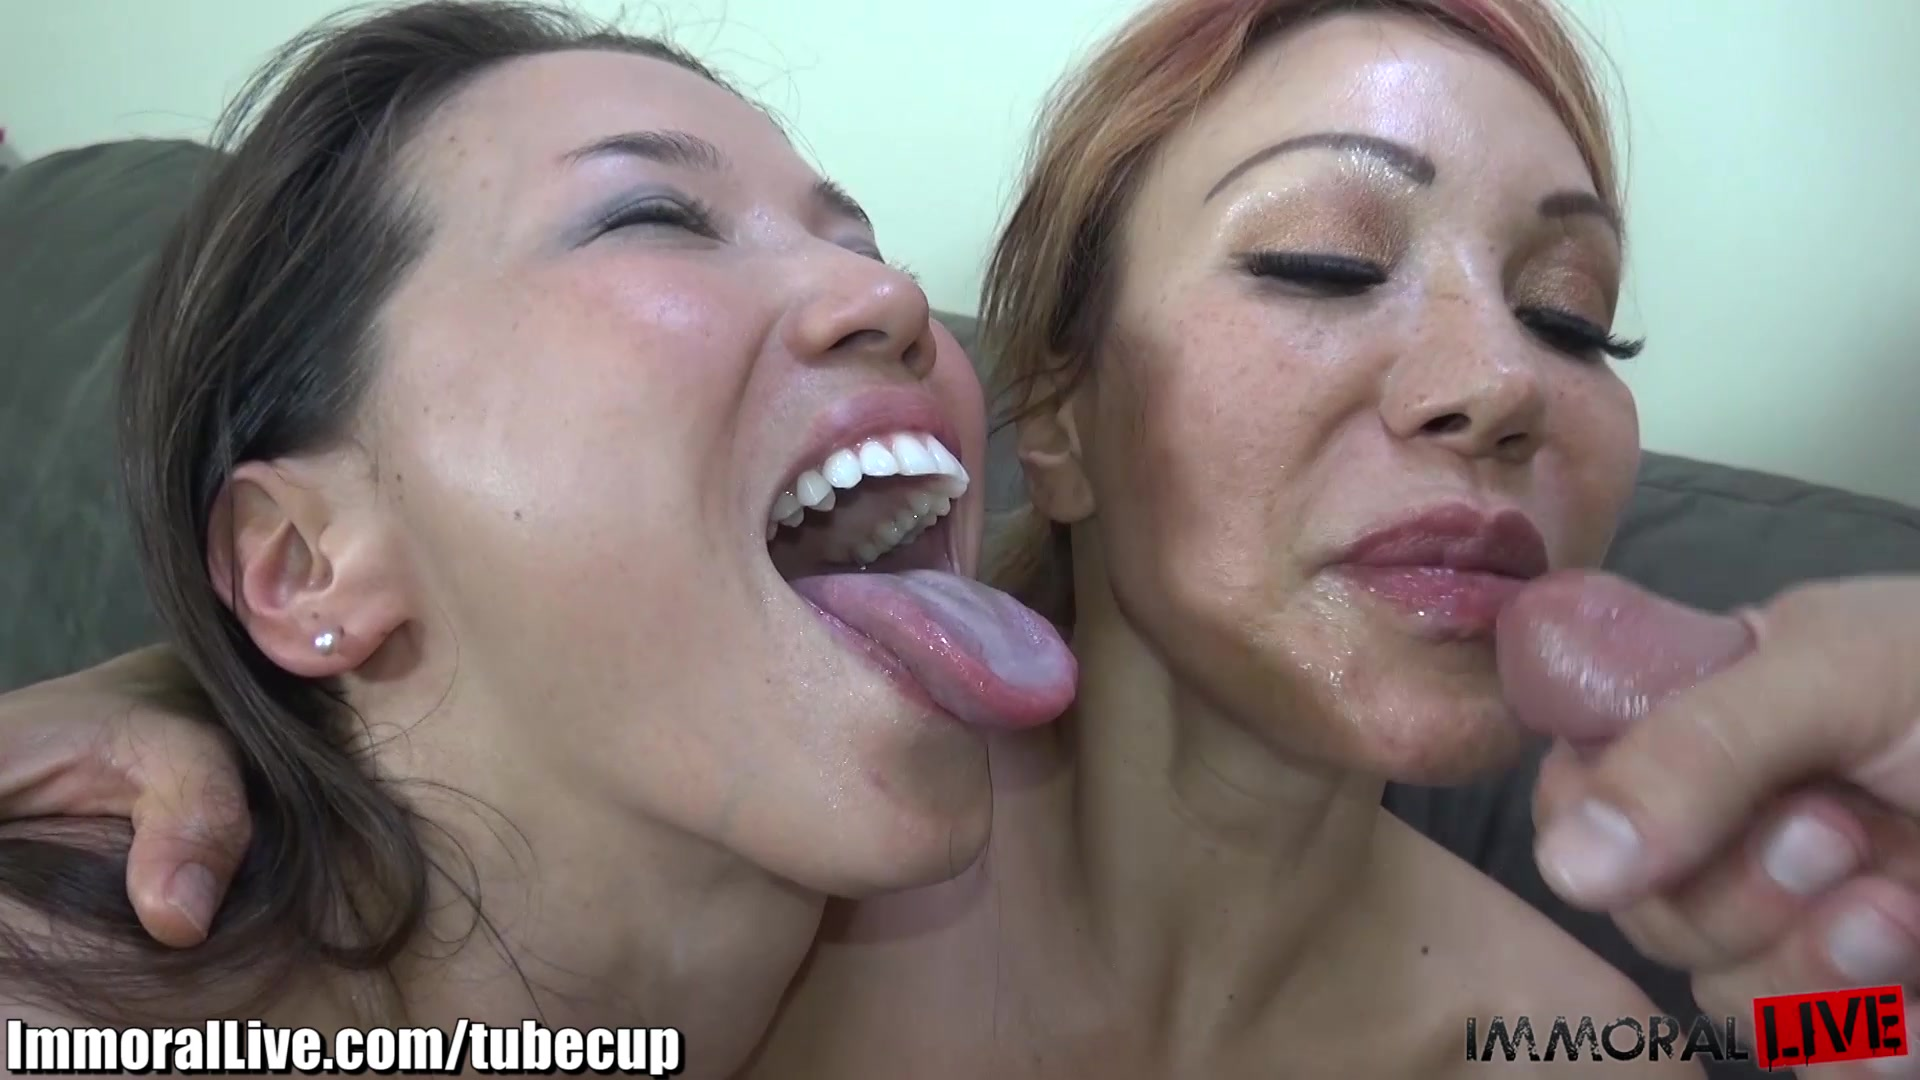 ImmoralLive Curvy Latina & her Petite Asian GF in the best 4some!